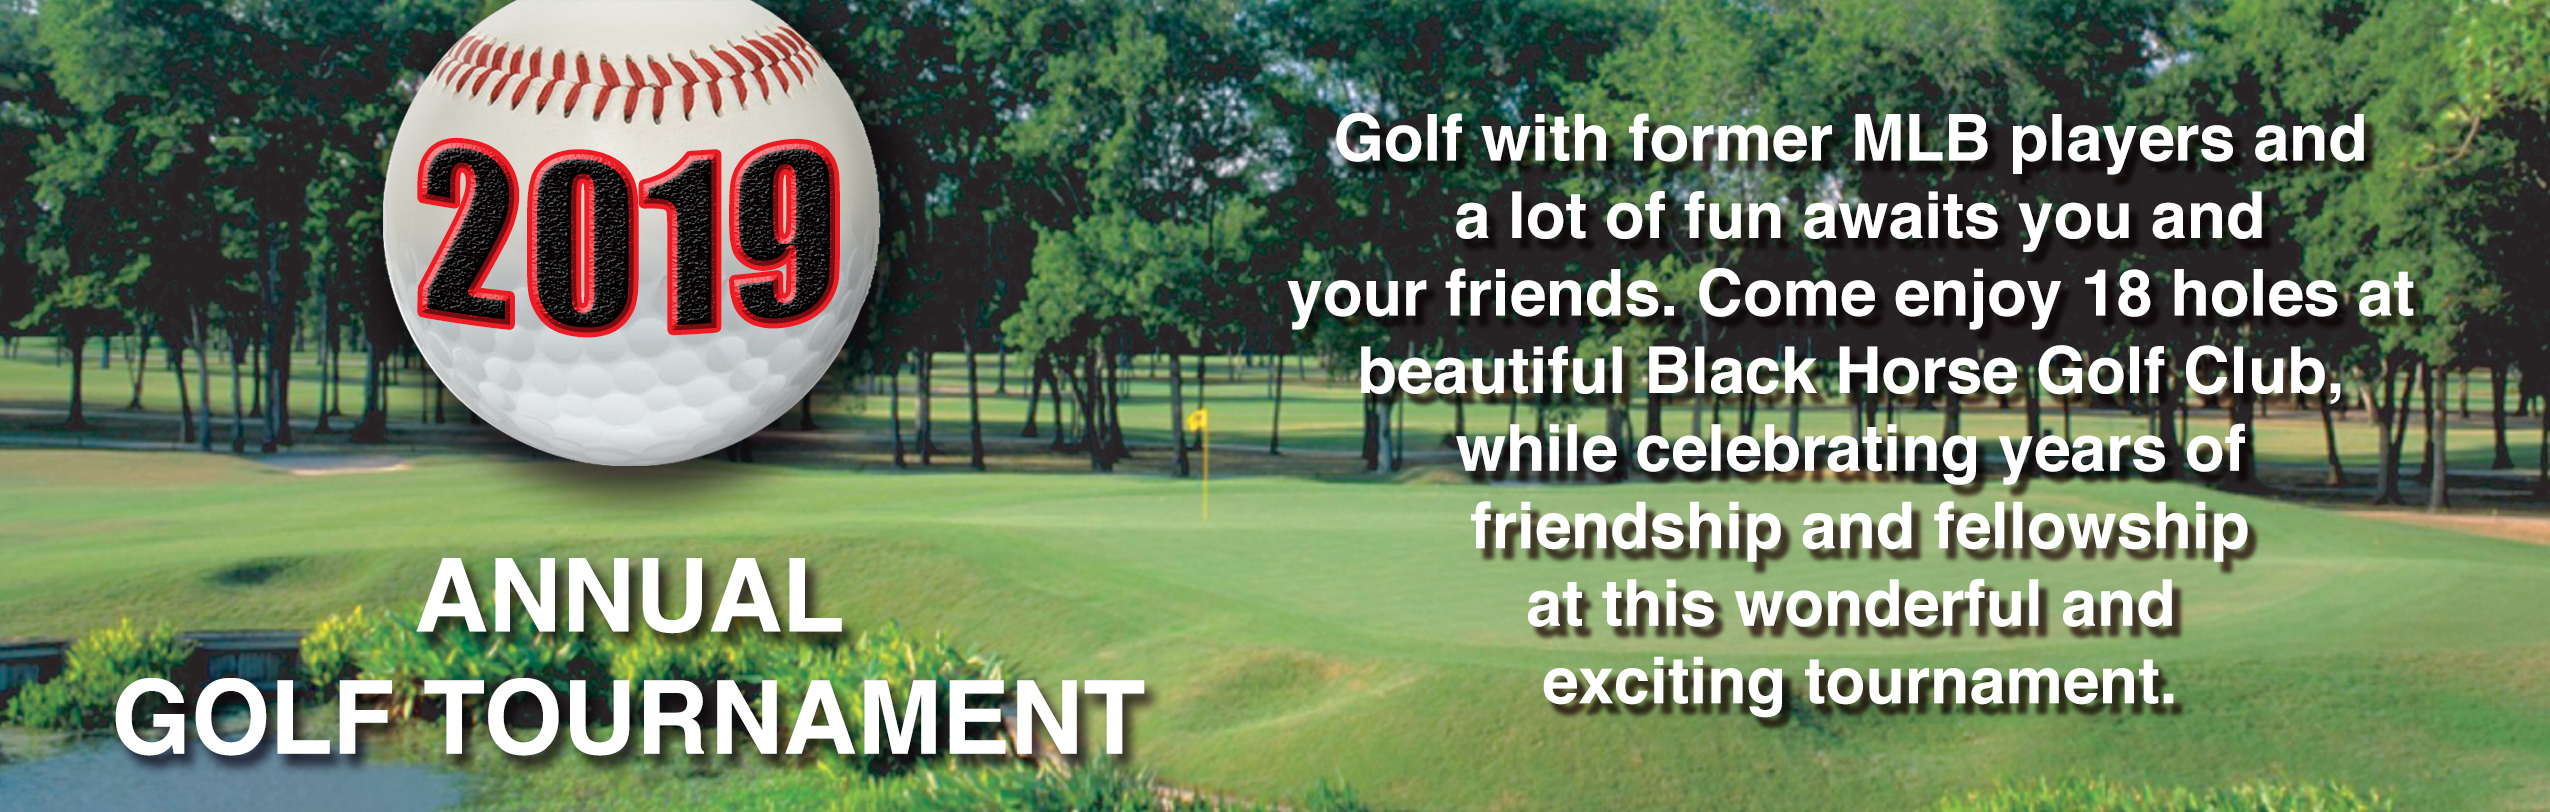 RHB Golf web Header 19